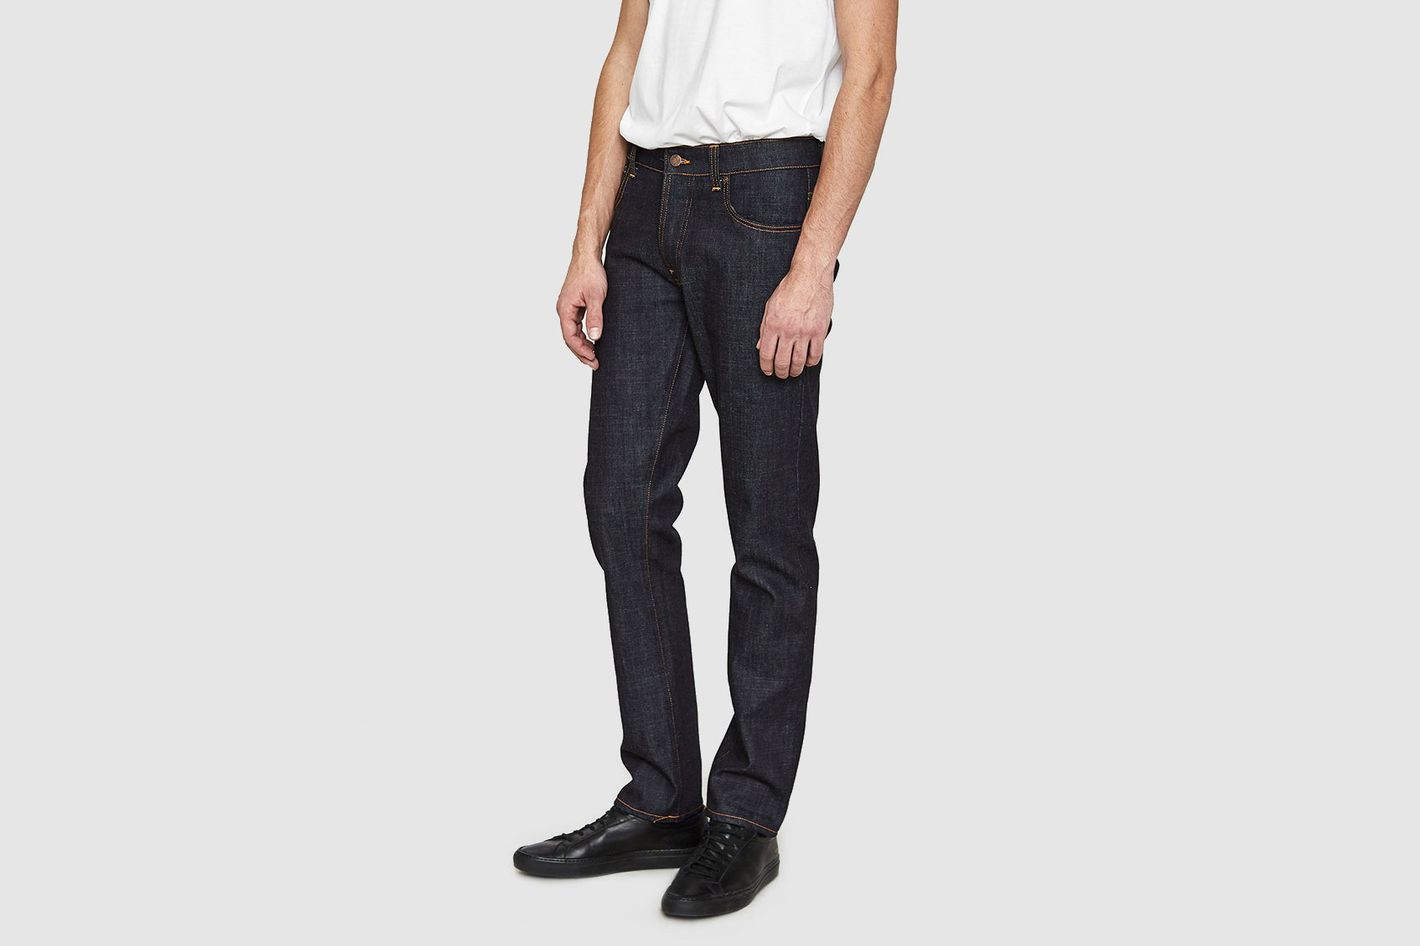 Nudie Jeans Dude Dan Dry Comfort Dark Denim